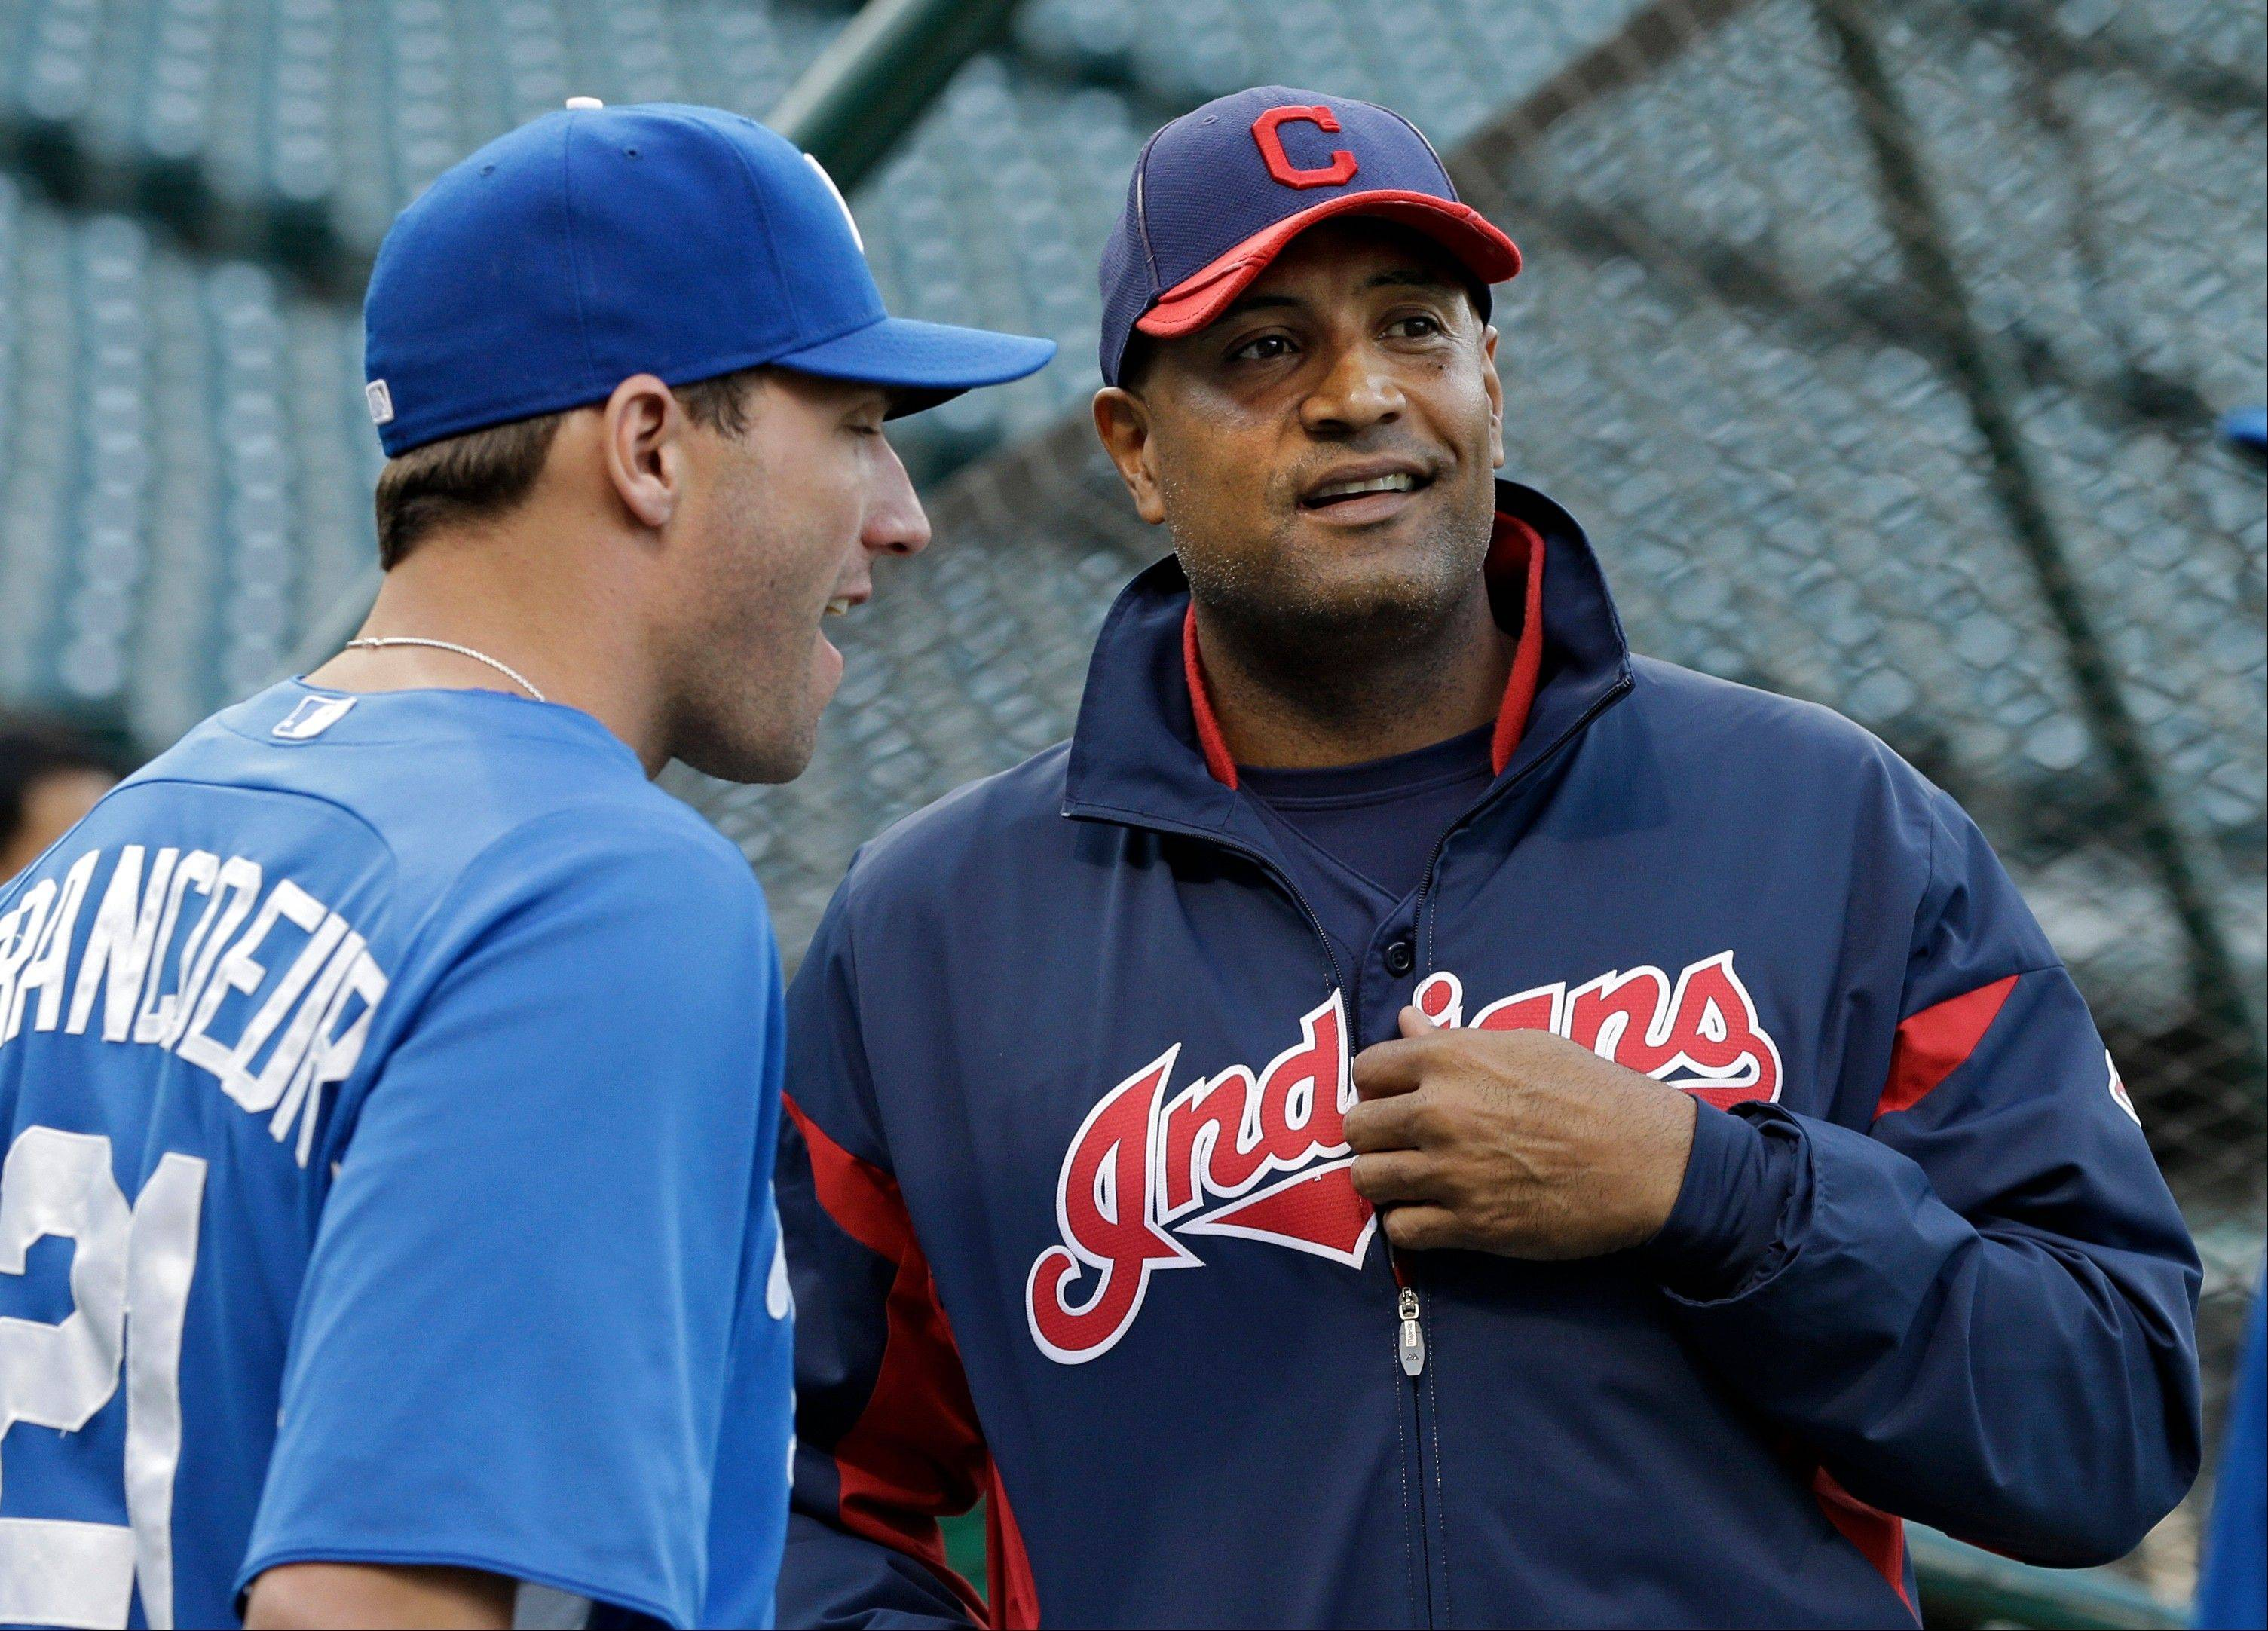 Indians interim manager Sandy Alomar Jr. talks with Royals right fielder Jeff Francoeur during batting practice before Friday�s game in Cleveland.